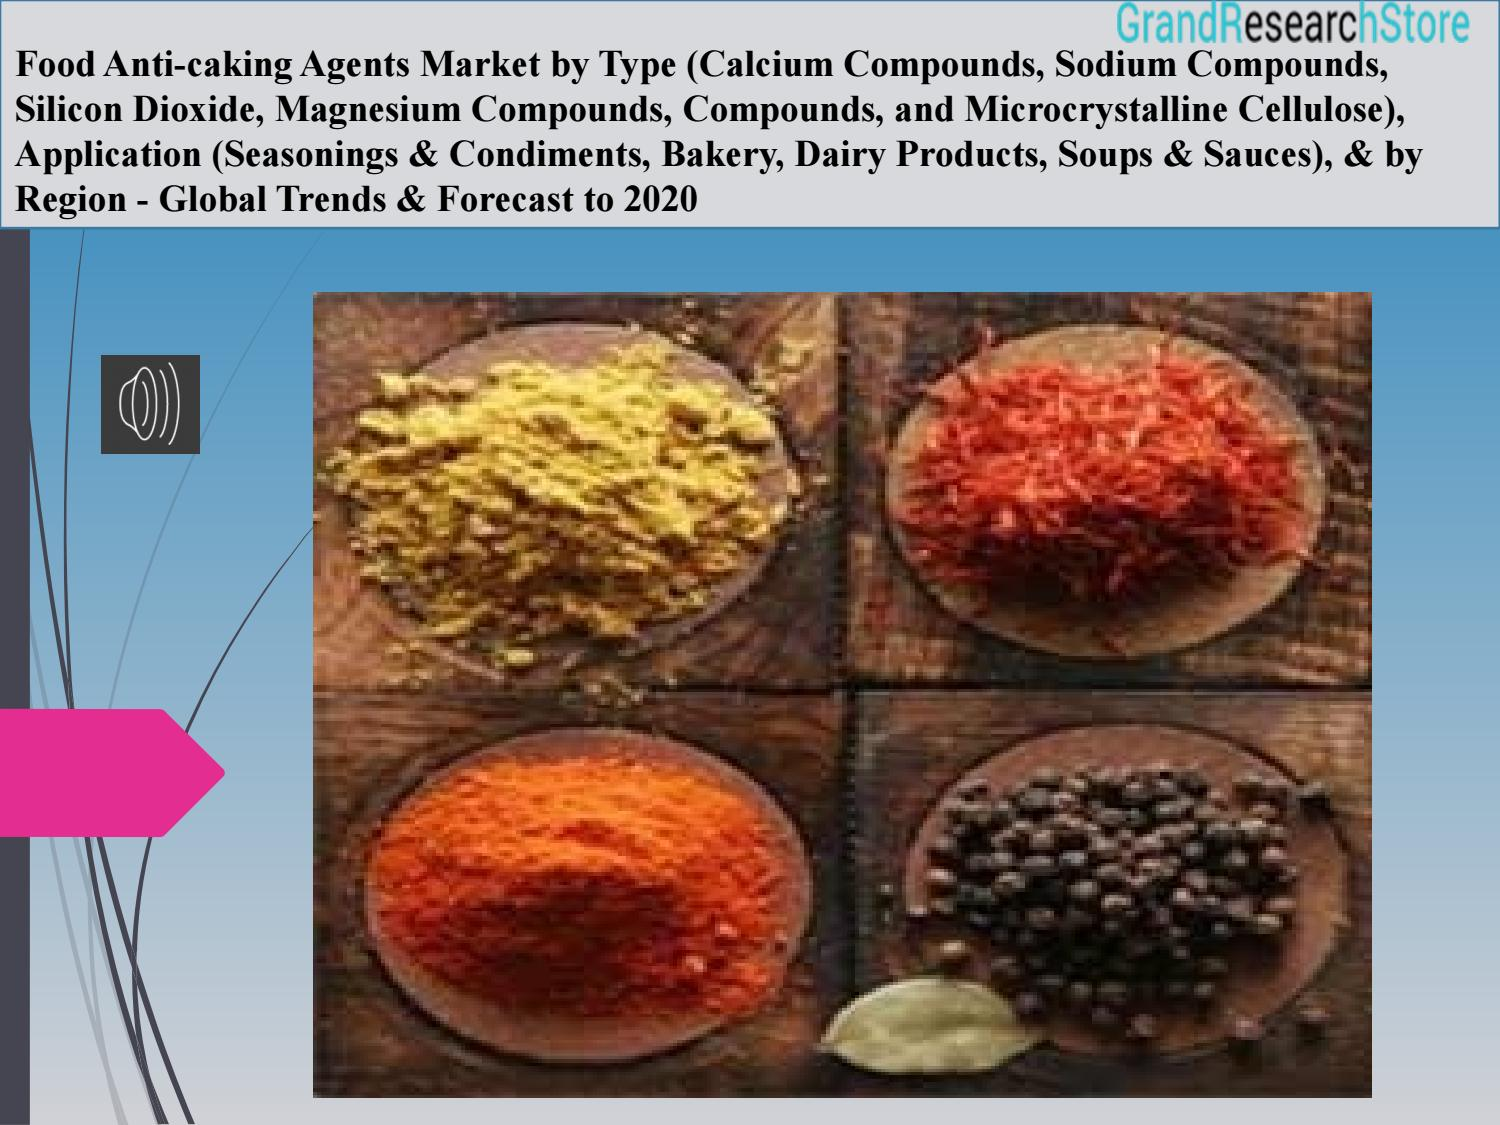 Food anti caking agents market - Global Trends & Forecast to